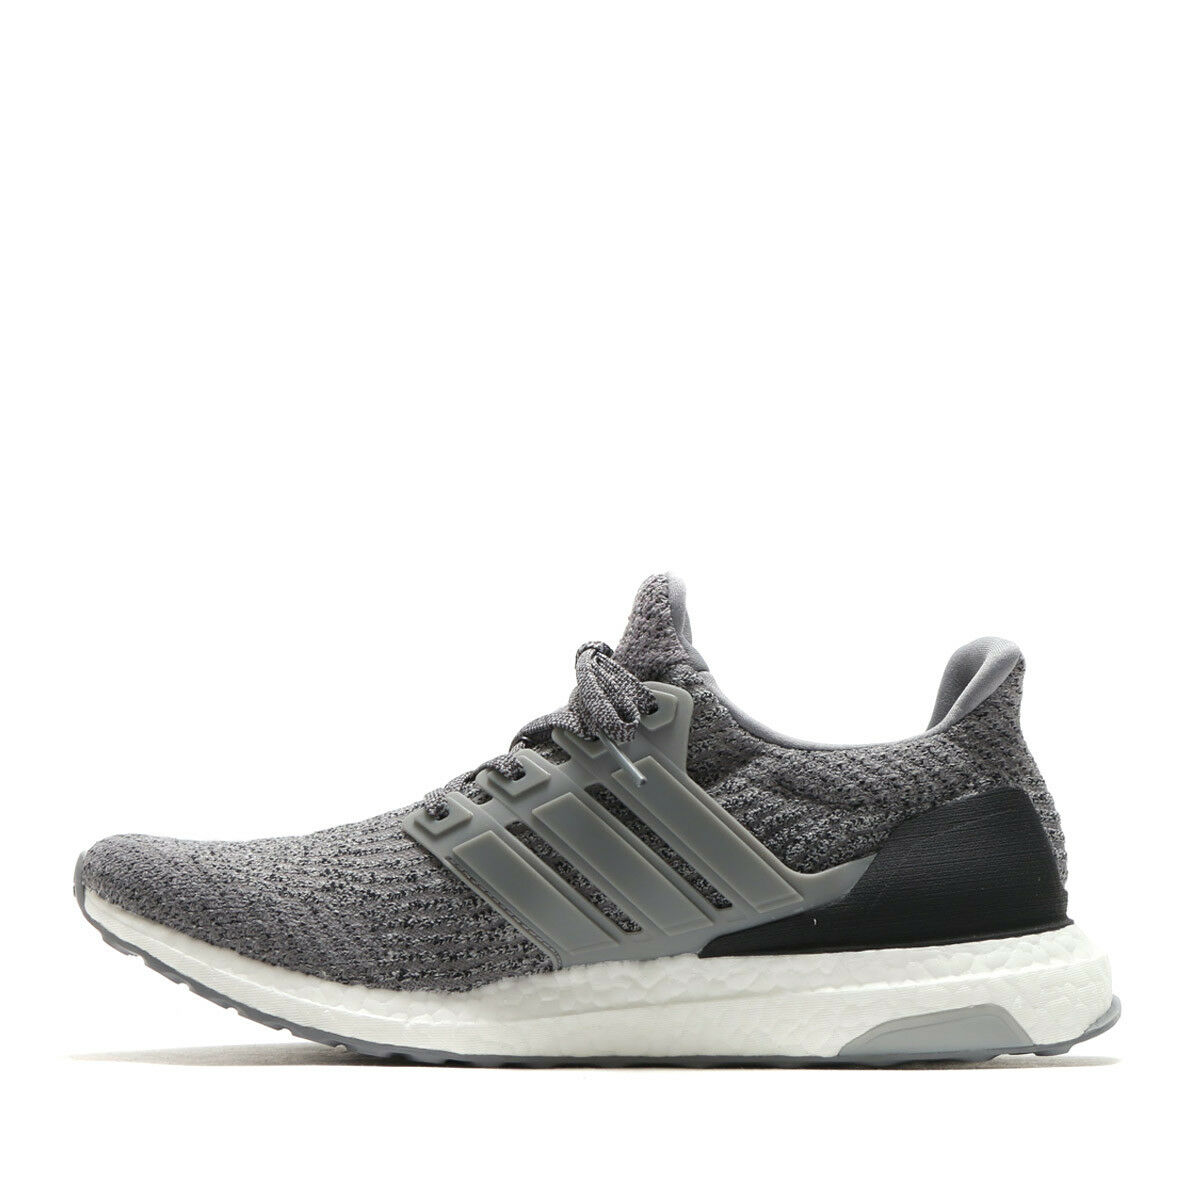 NEW Adidas Ultra Boost 3.0 Grey Three Gray Black White S82023 Men's